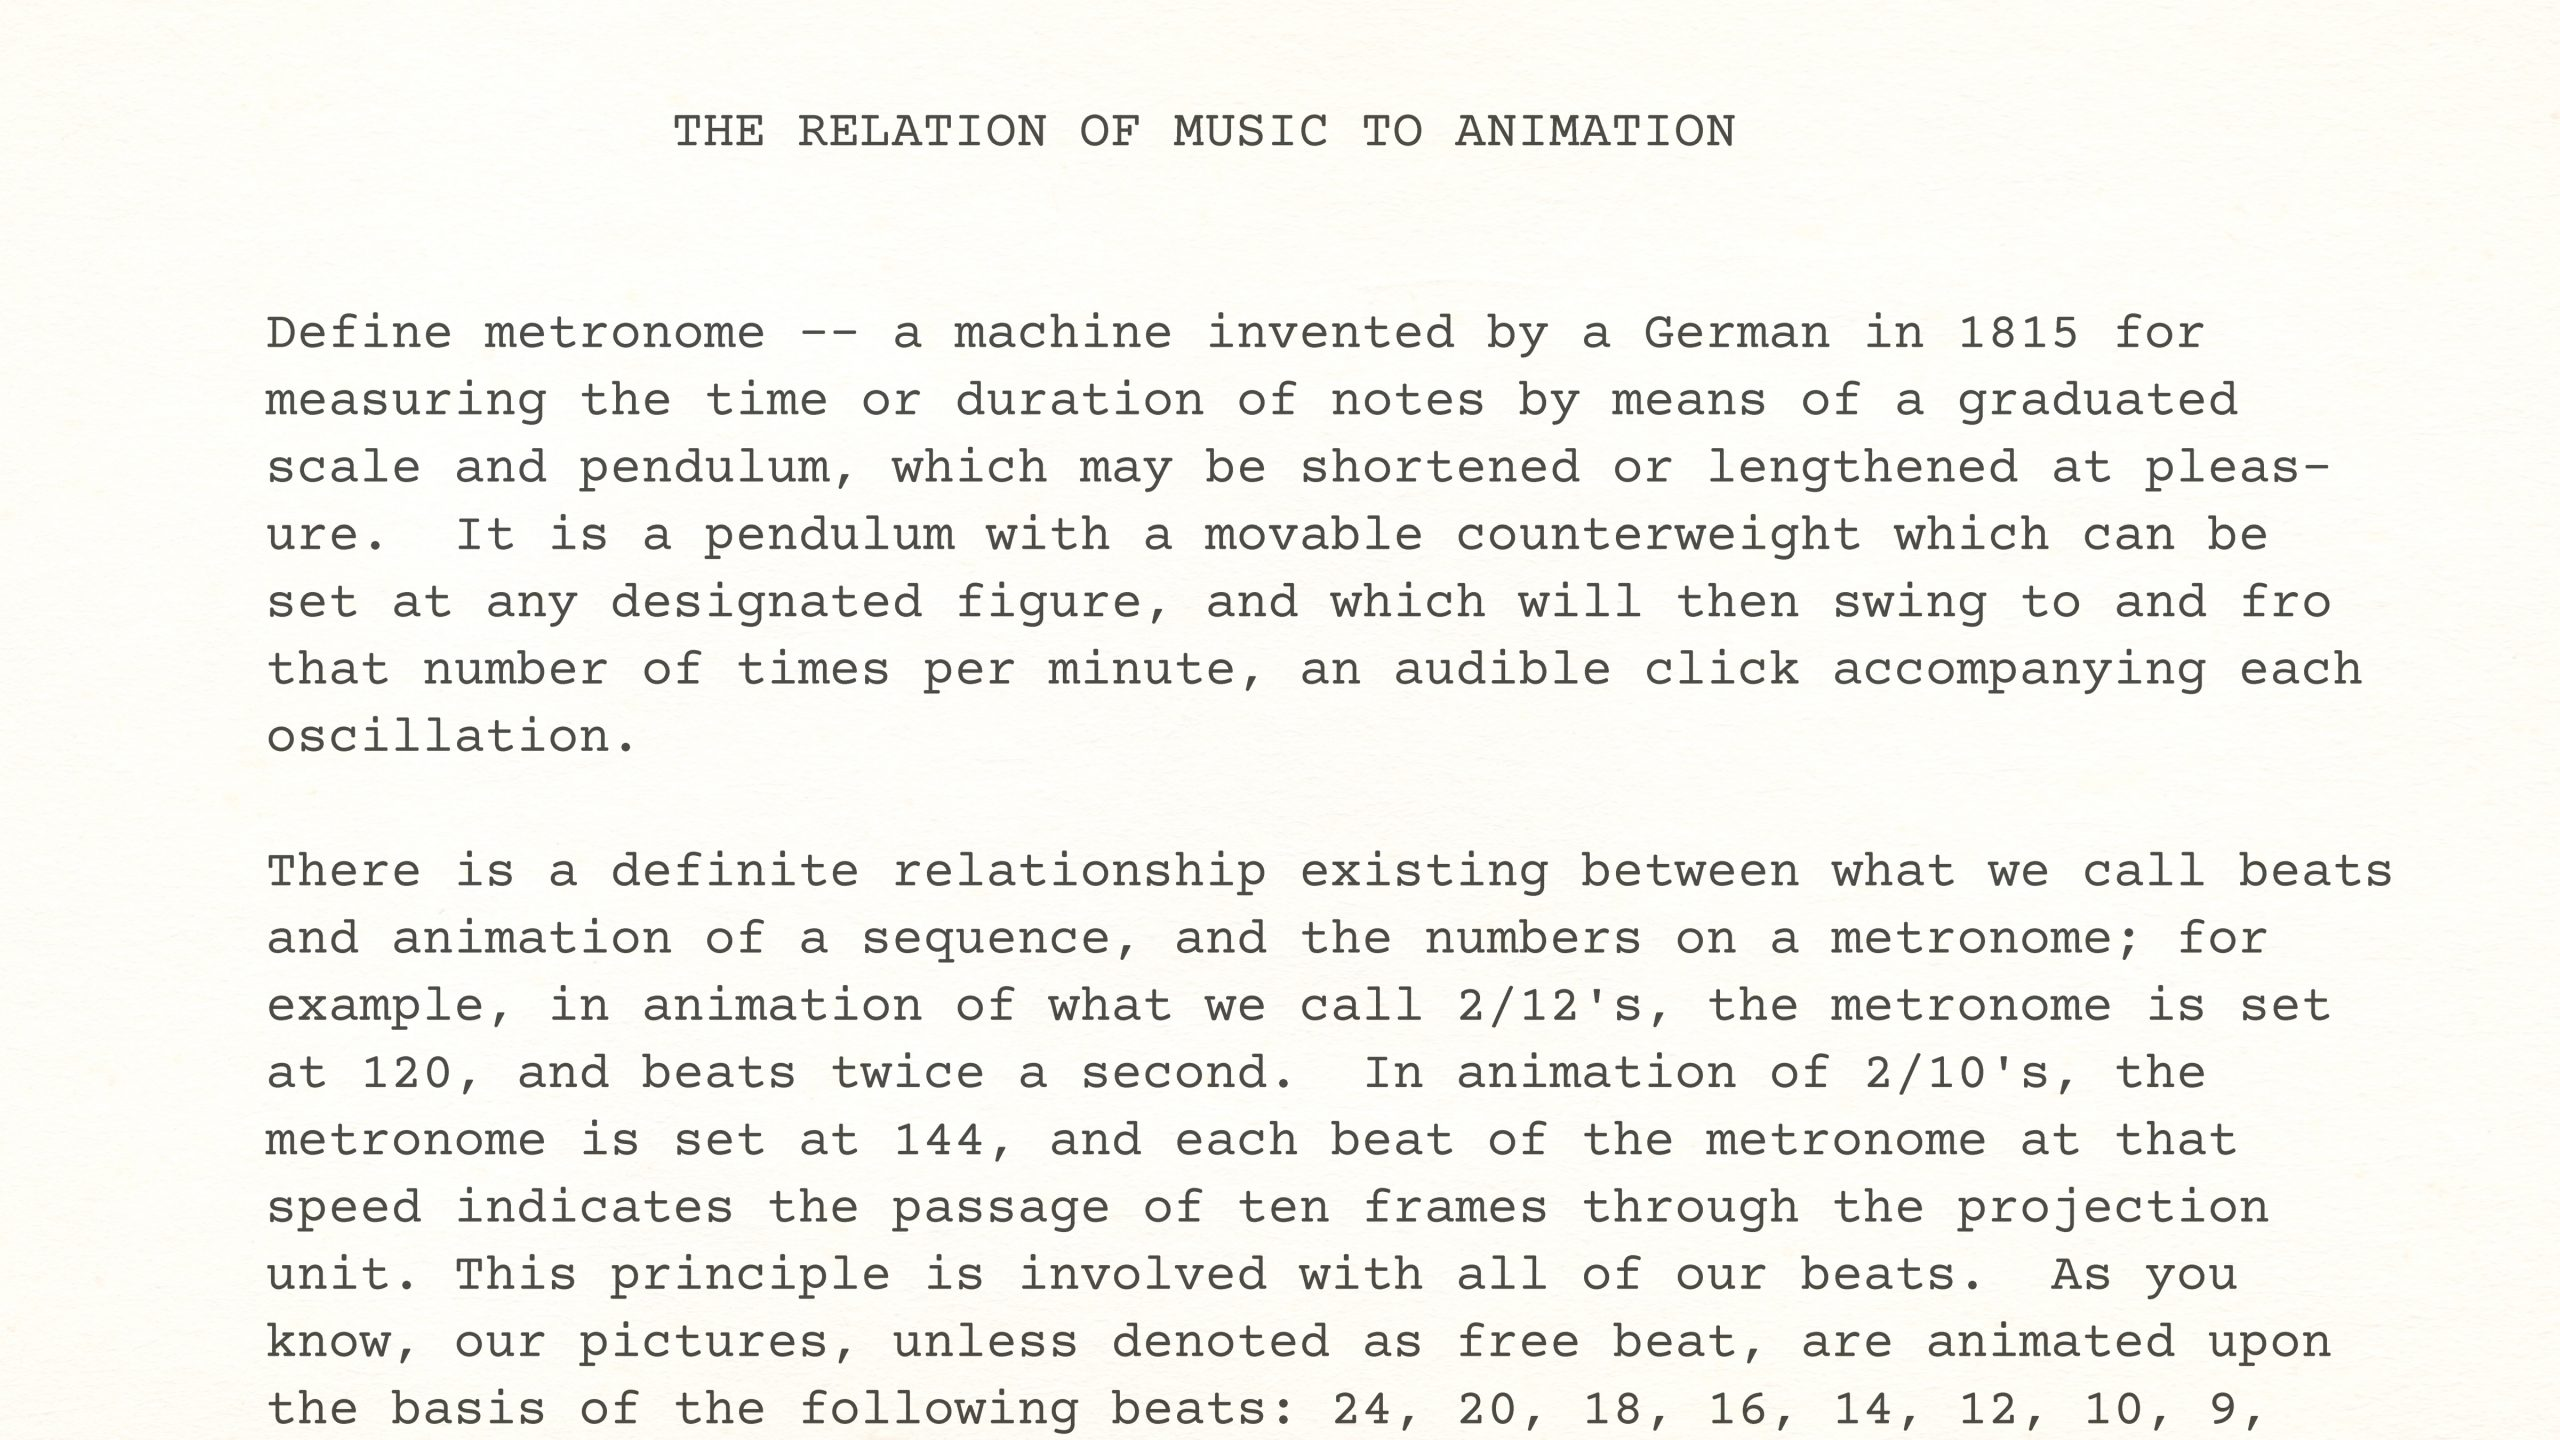 Walt Disney Studios Lecture — THE RELATION OF MUSIC TO ANIMATION by Albert Malotte, estimated late 1936 to early 1937